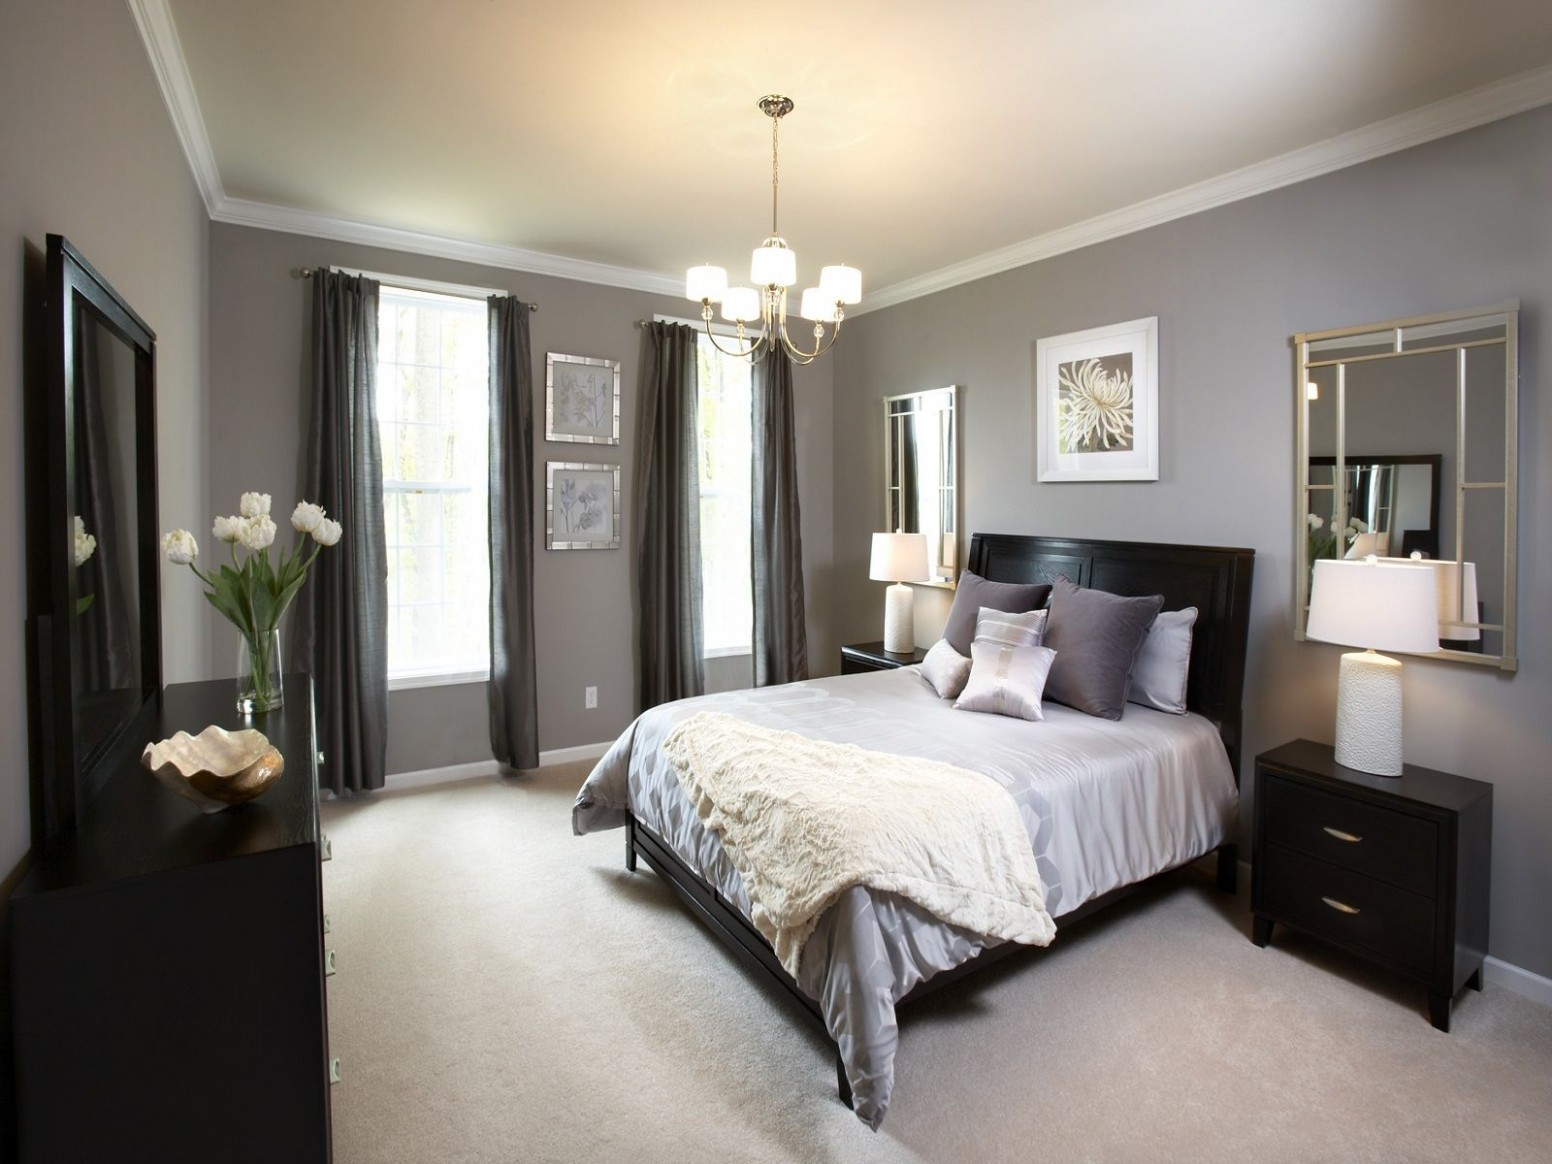 Awesome Bedroom Shade Chandelier Over White Bedding Ideas With  - Bedroom Ideas Black